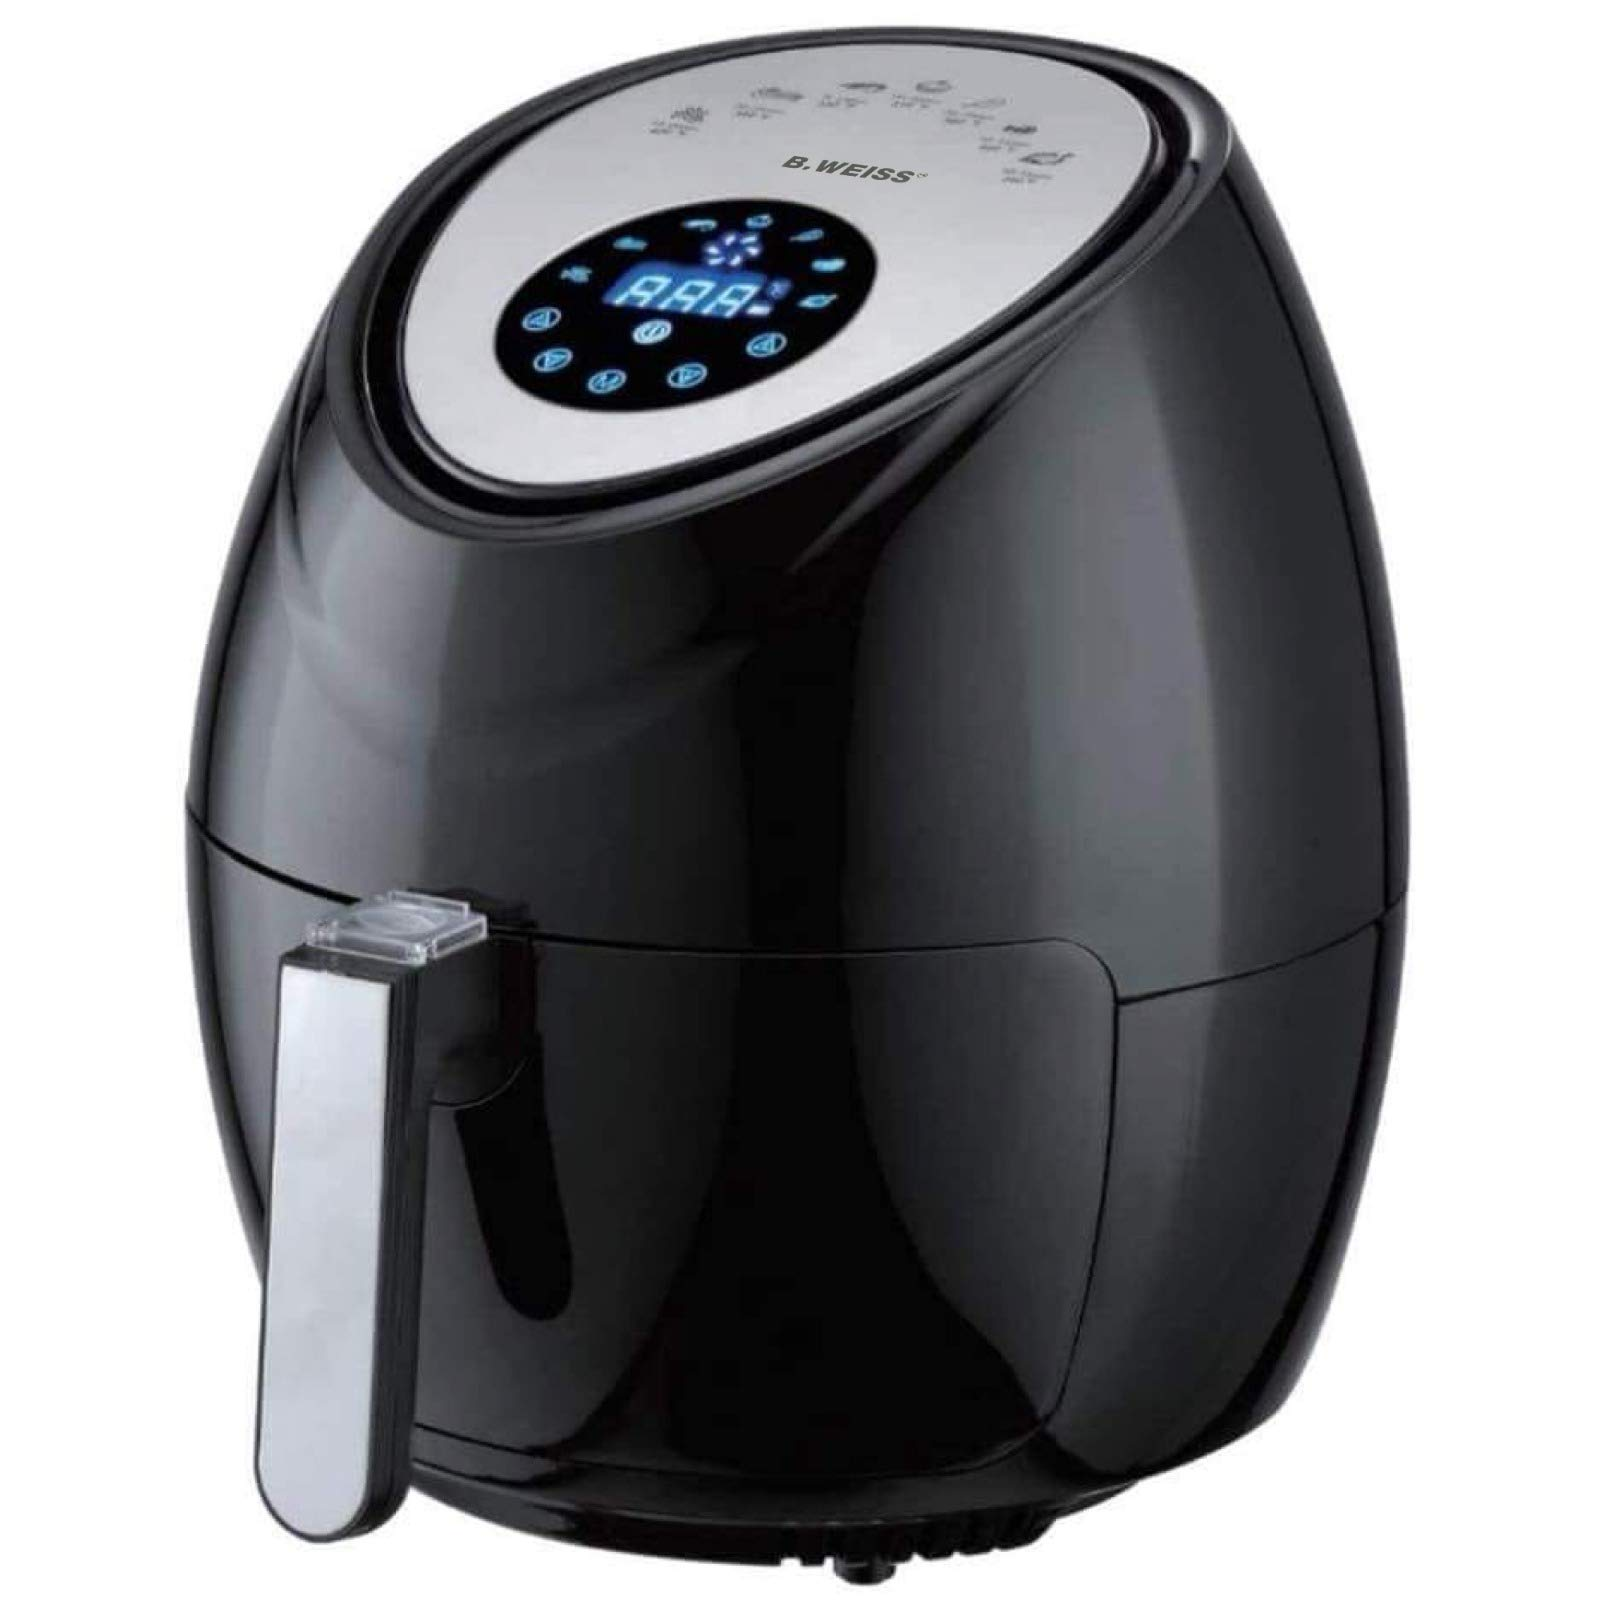 Air Fryer XL 8-in-1 By B.WEISS, (5.5 QT) Family Size Huge capacity,1800W power,With Airfryer accessories; PIZZA Pan, (50 Recipes Cook Book),Toaster rack, Cooking Divider.